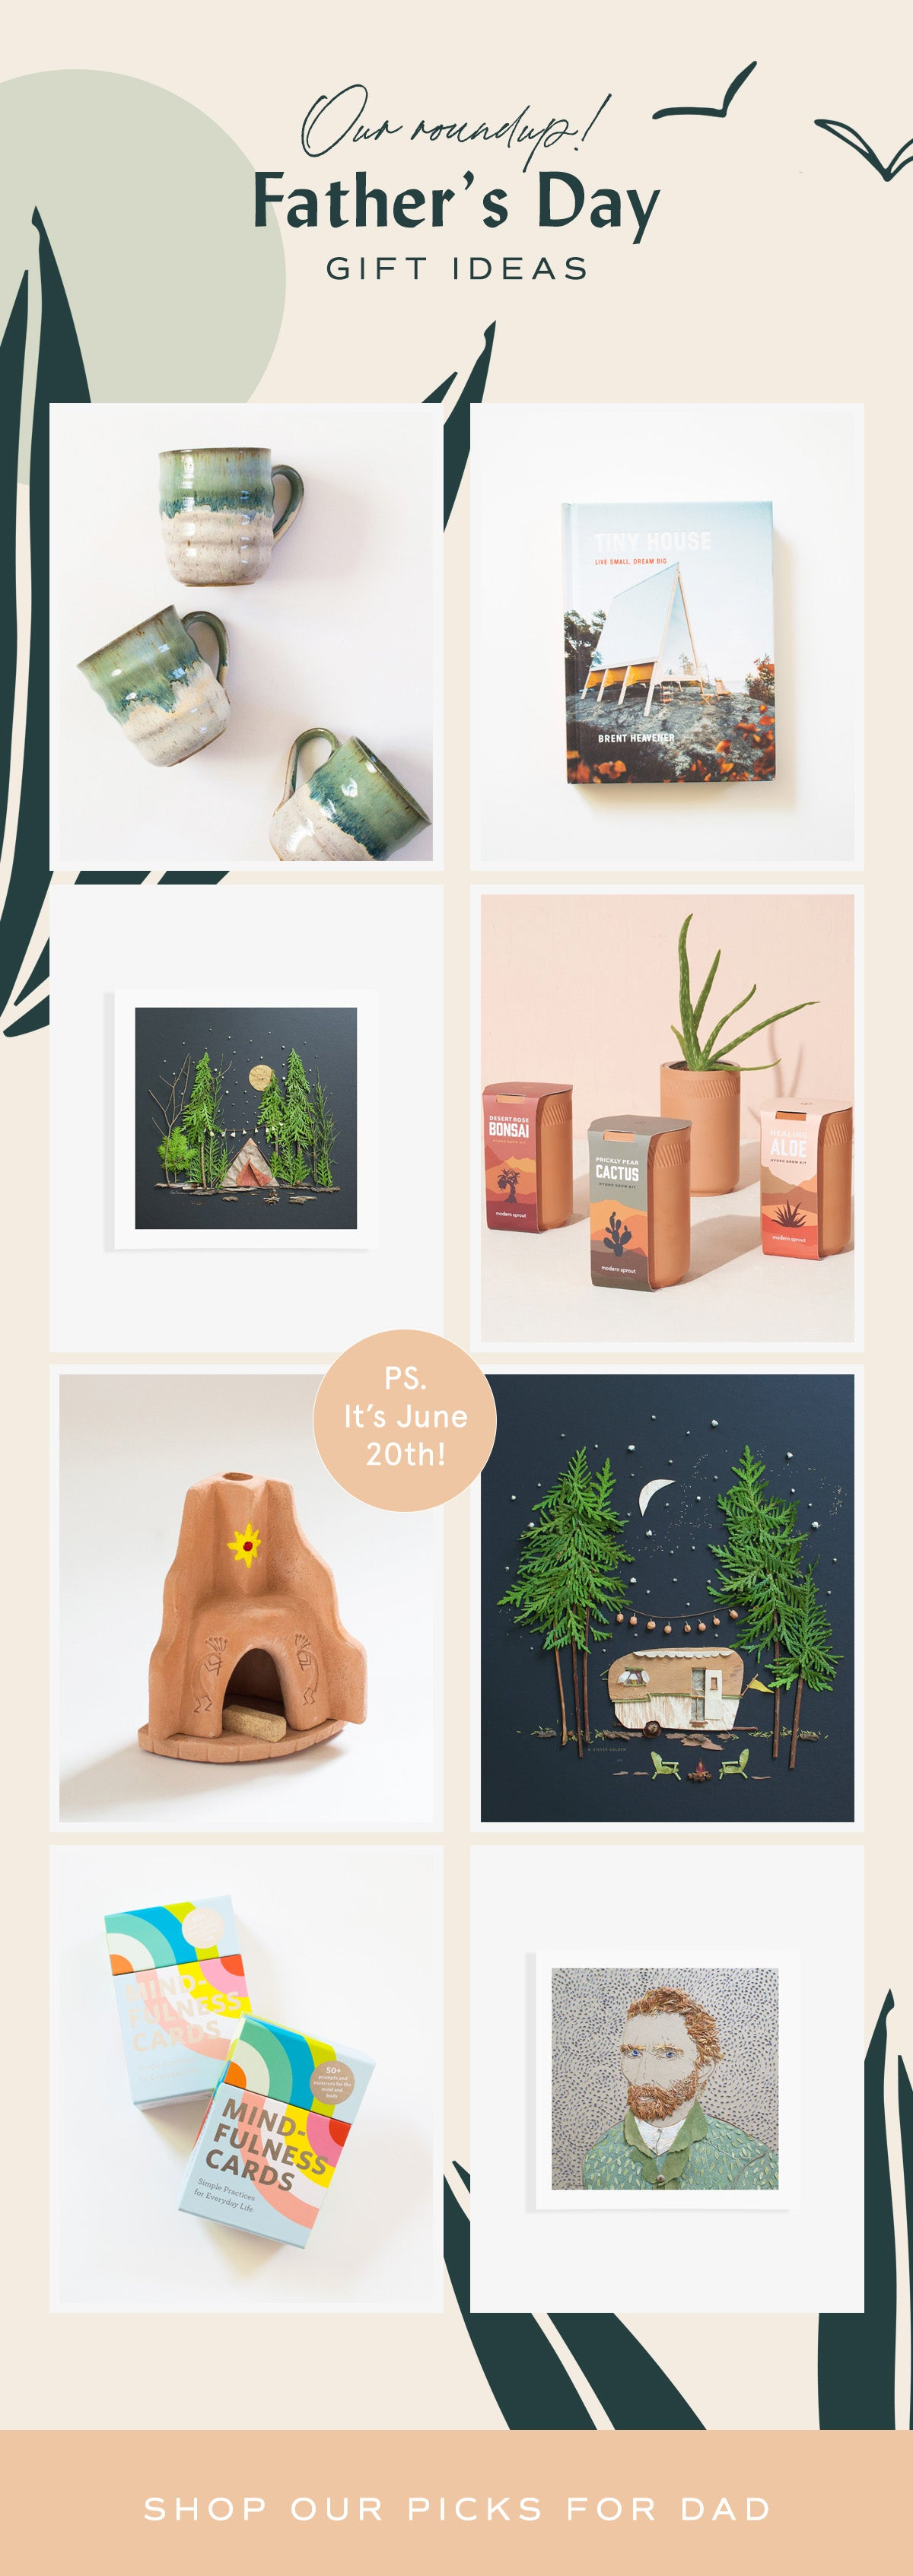 Father's Day Gift Ideas | Sister Golden